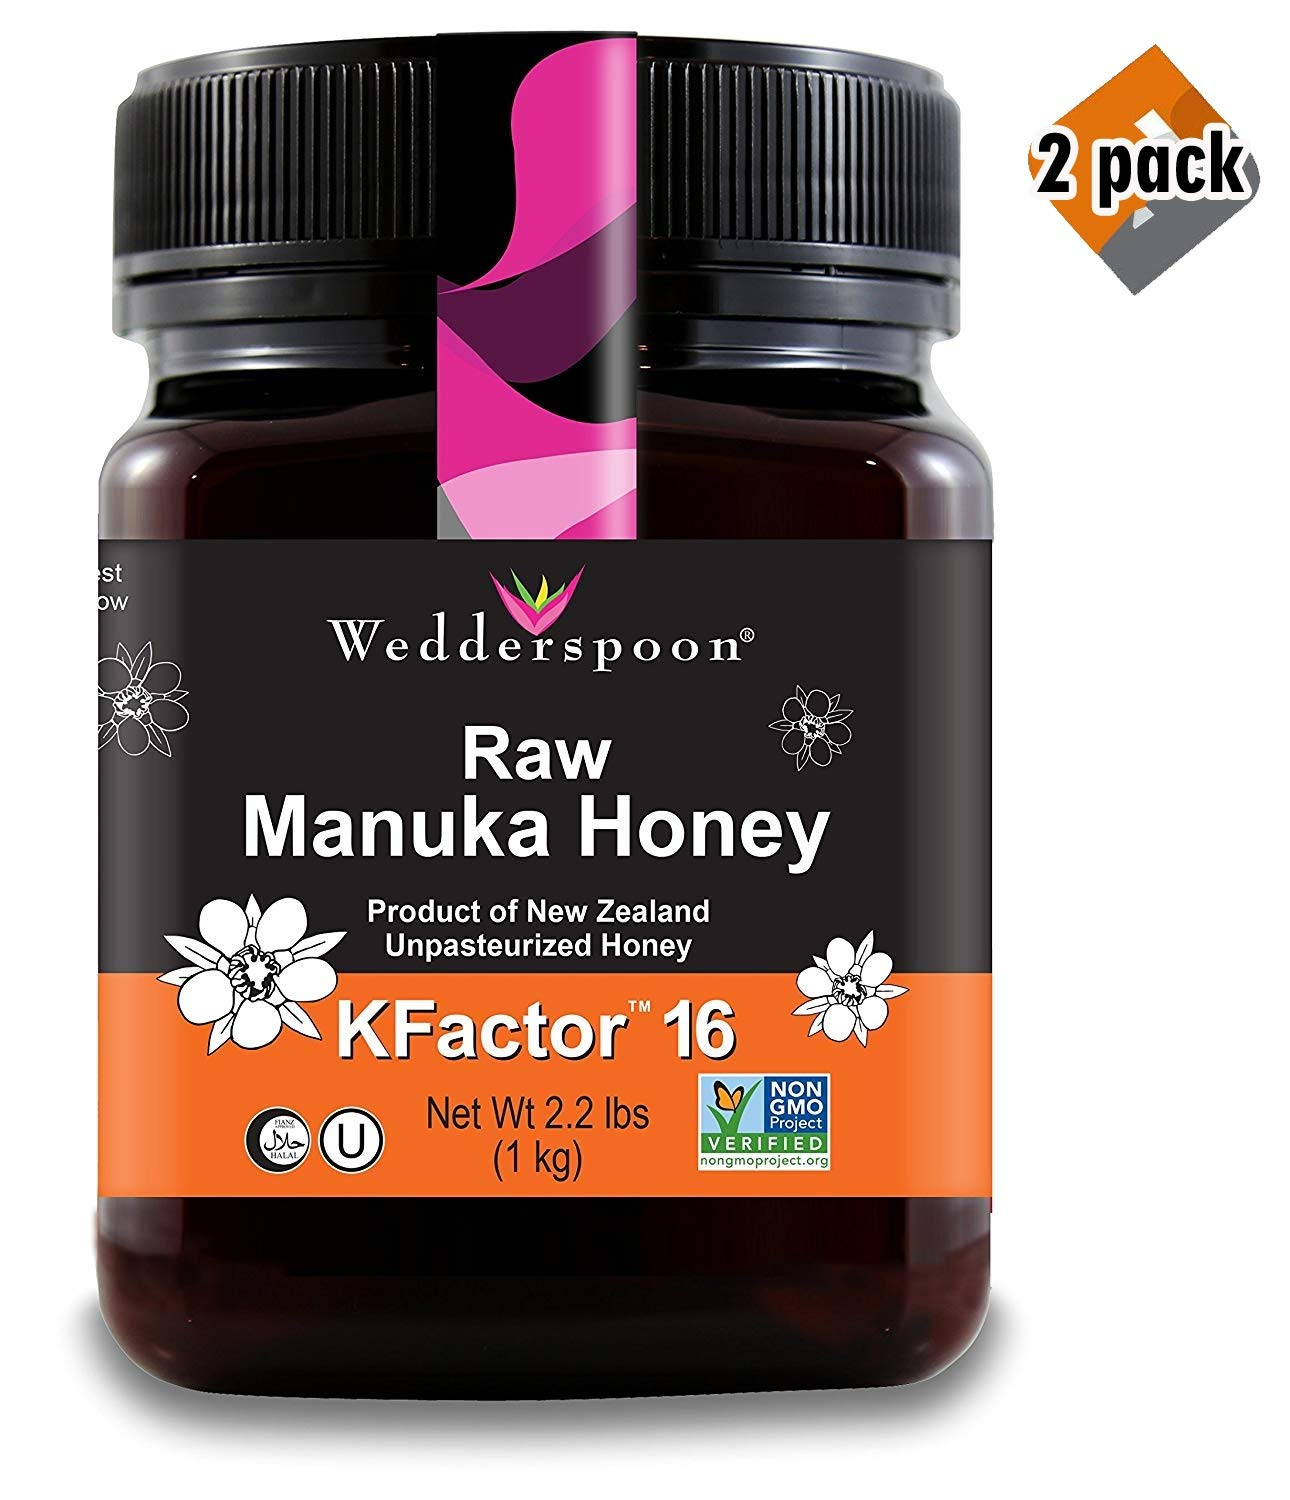 Wedderspoon Raw Premium Manuka Honey KFactor 16, Unpasteurized, Genuine New Zealand Honey, Multi-Functional, Non-GMO Superfood, 35.2 oz, 2 Pack